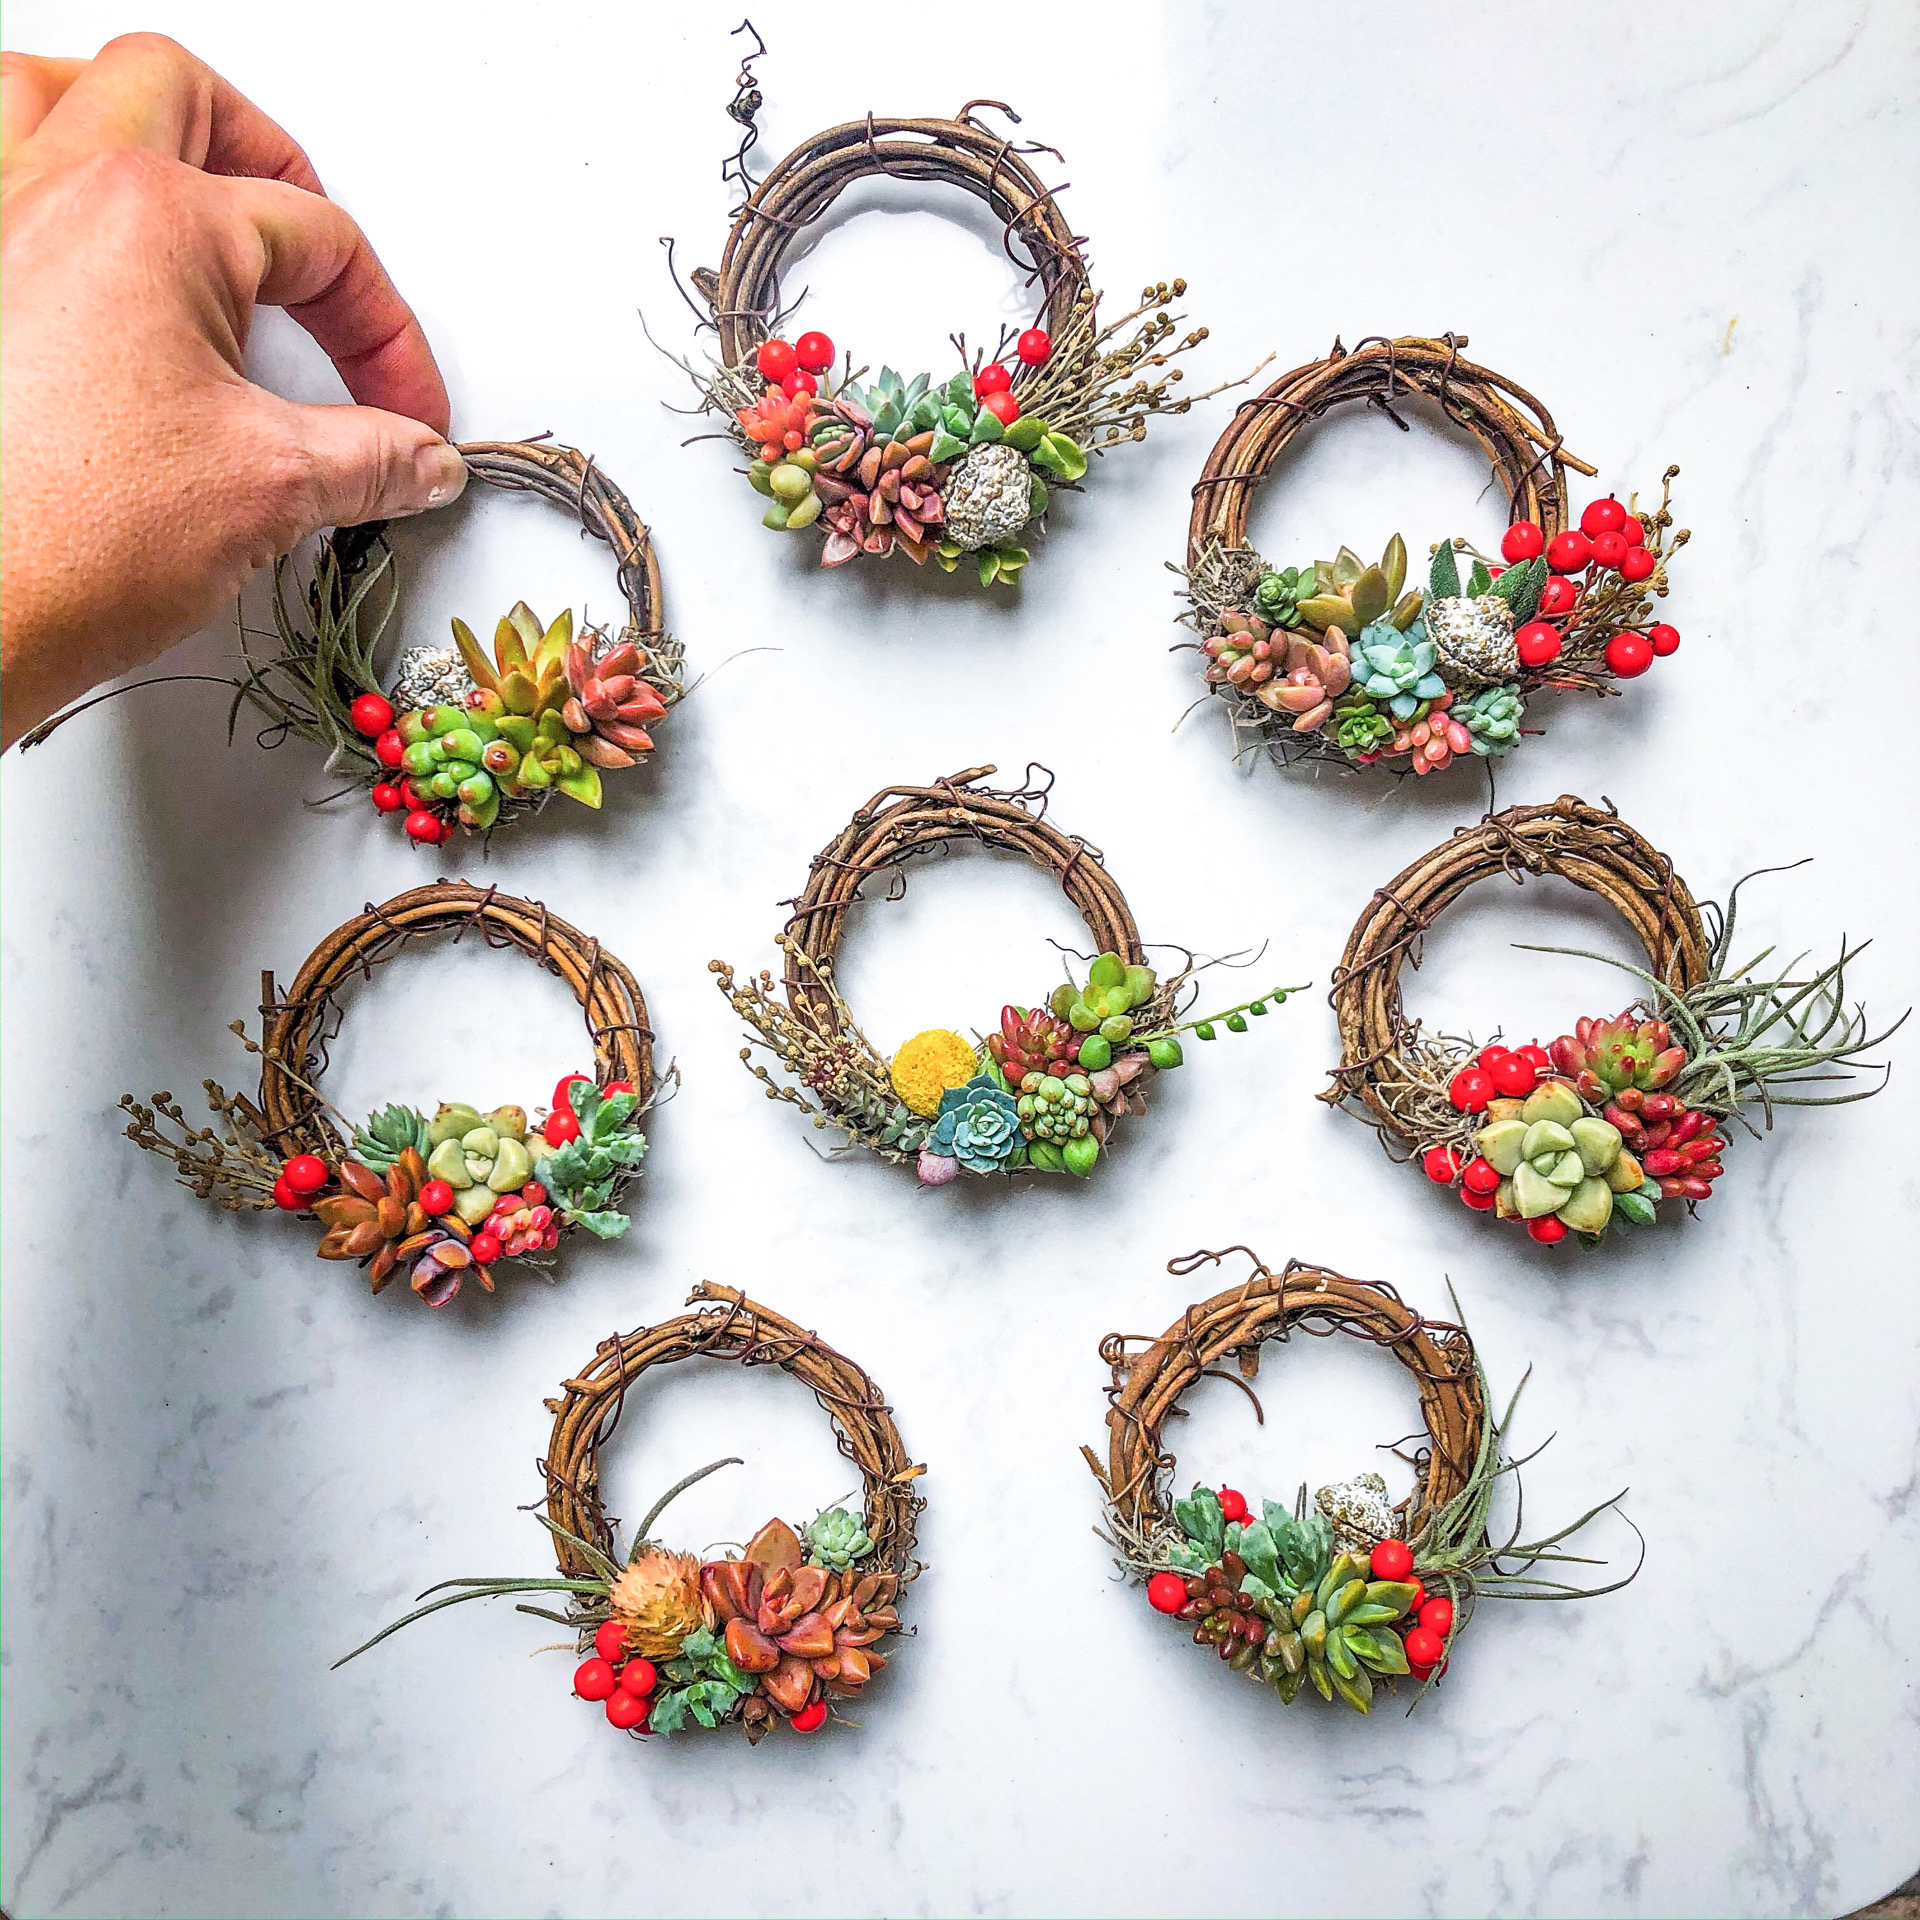 handmade mini-succulent wreath ornament for the Christmas holidays